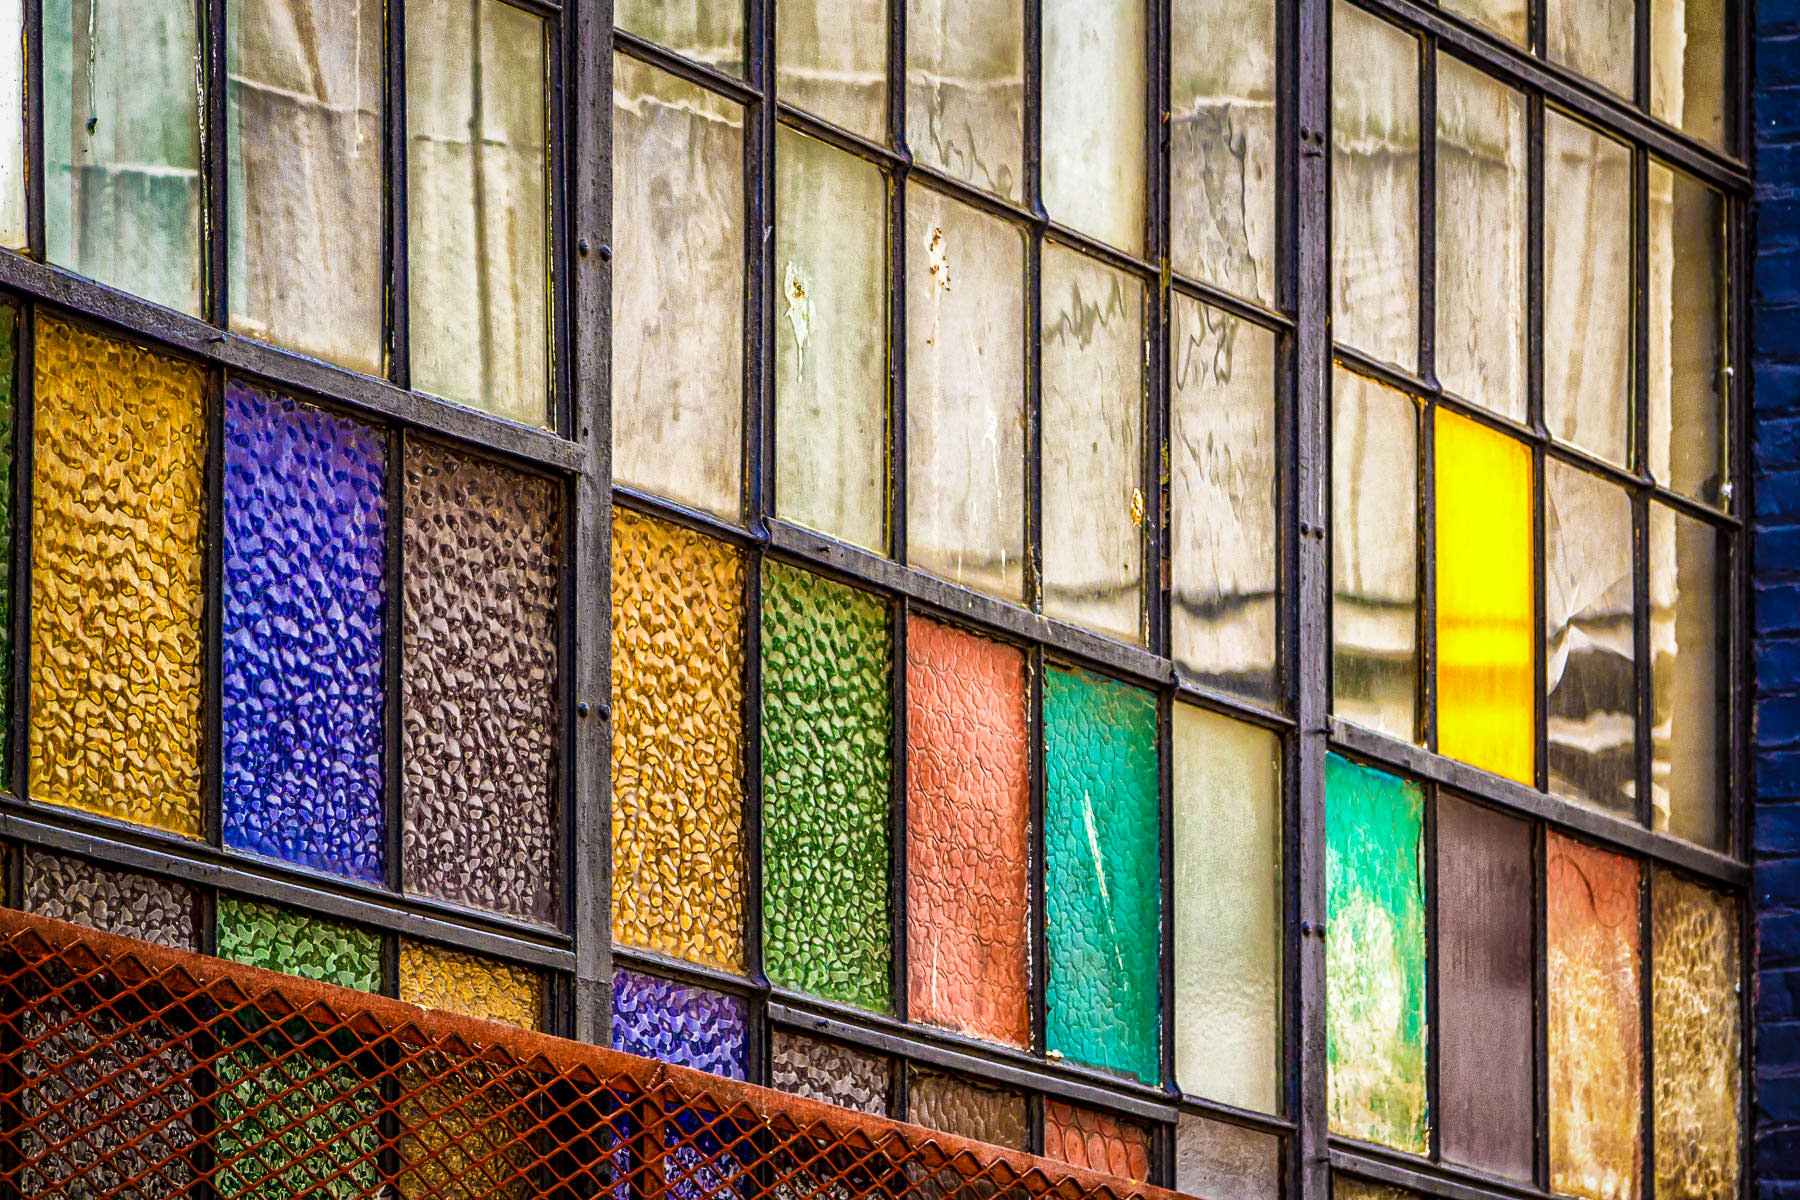 Multi-colored panes of glass in a window spotted in Downtown Seattle.